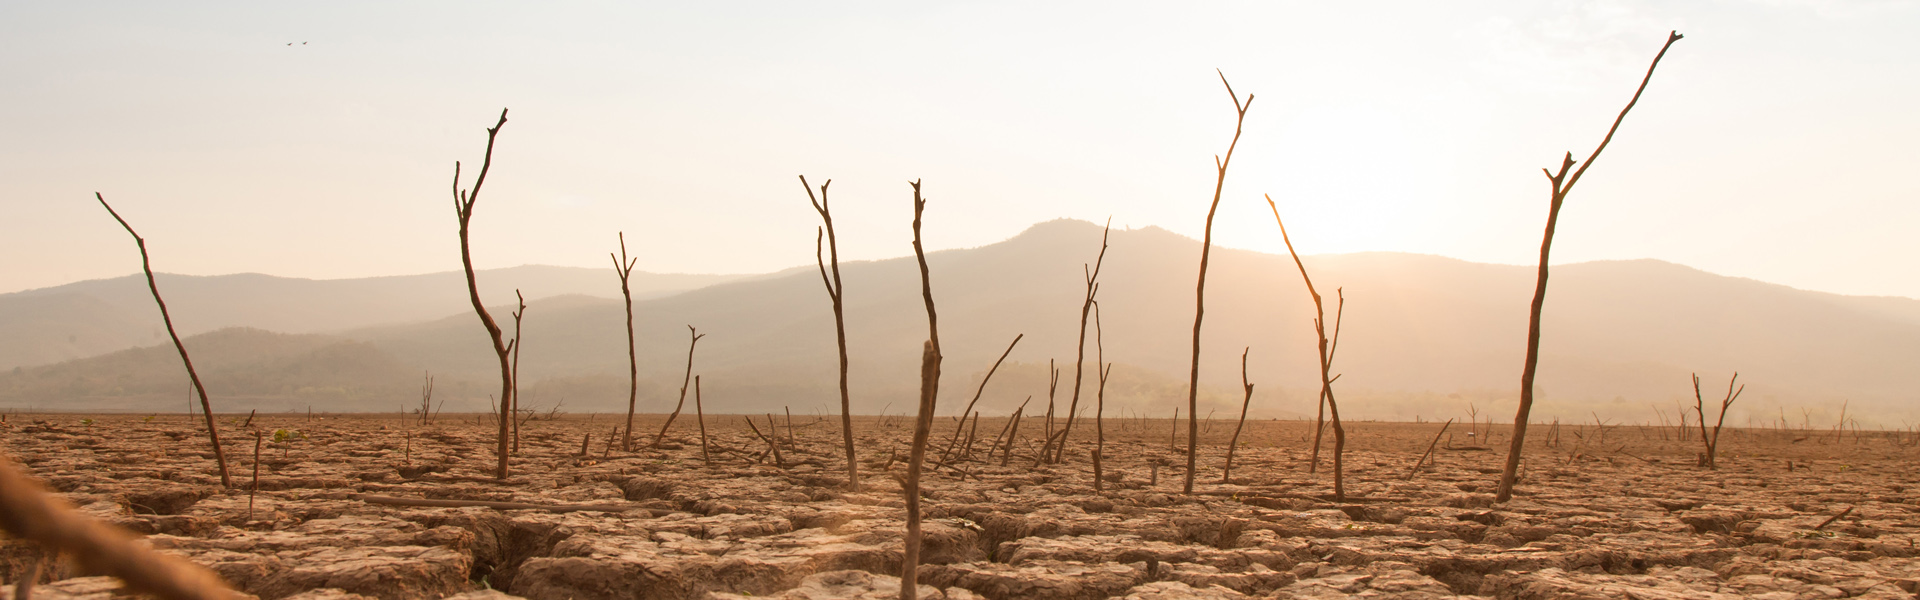 How will water shortages affect us?